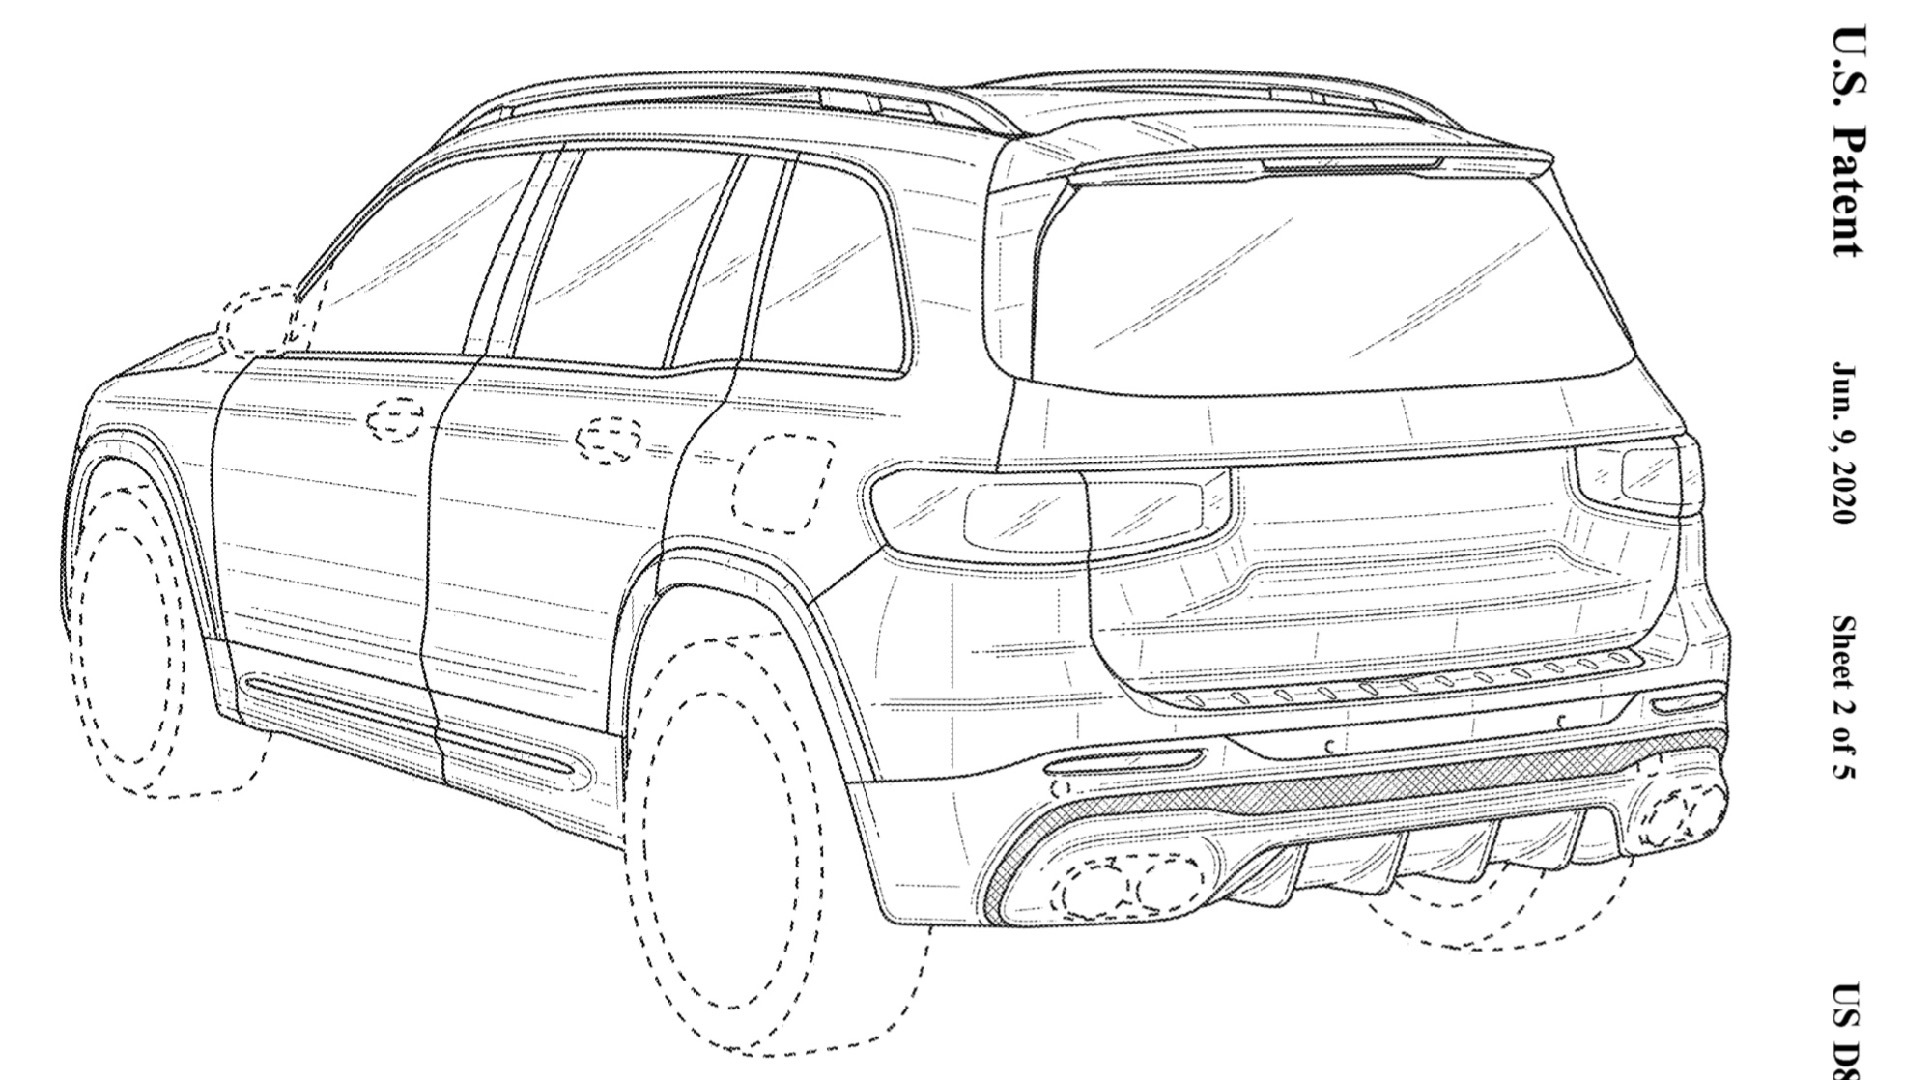 Likely 2021 Mercedes-AMG GLB 45 shown in patent filing